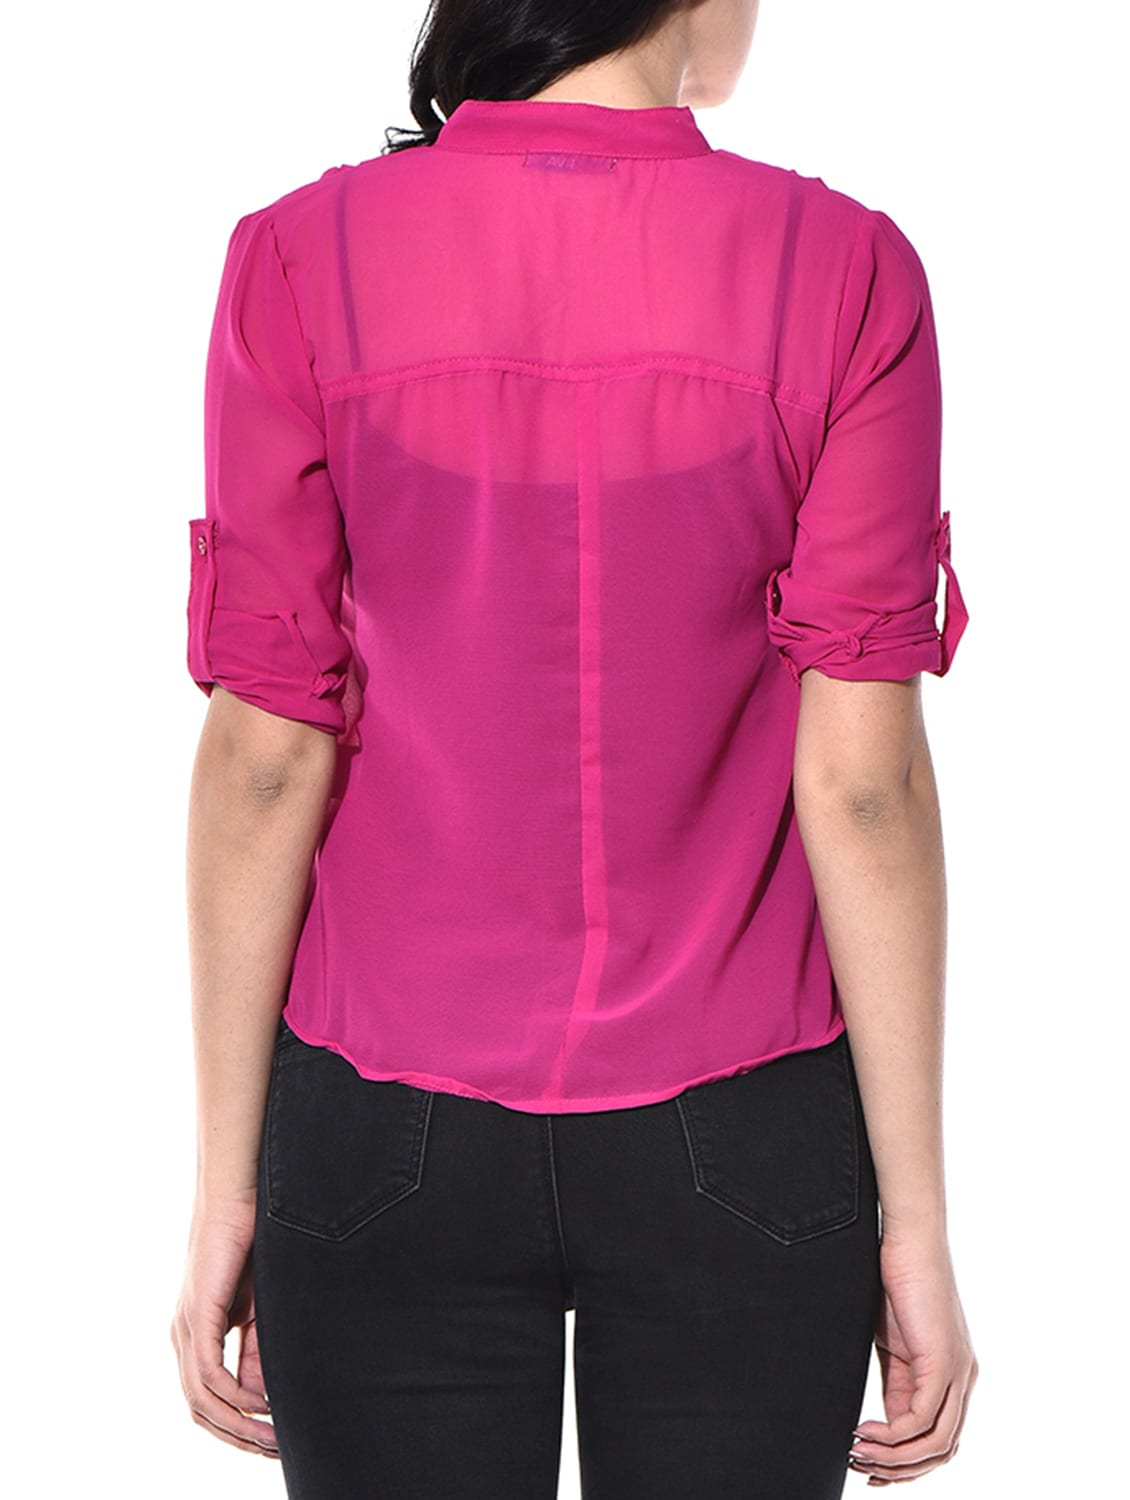 7138717622ca5 Buy Magenta Poly Georgette Shirt for Women from Aviddiva for ₹599 at 0% off